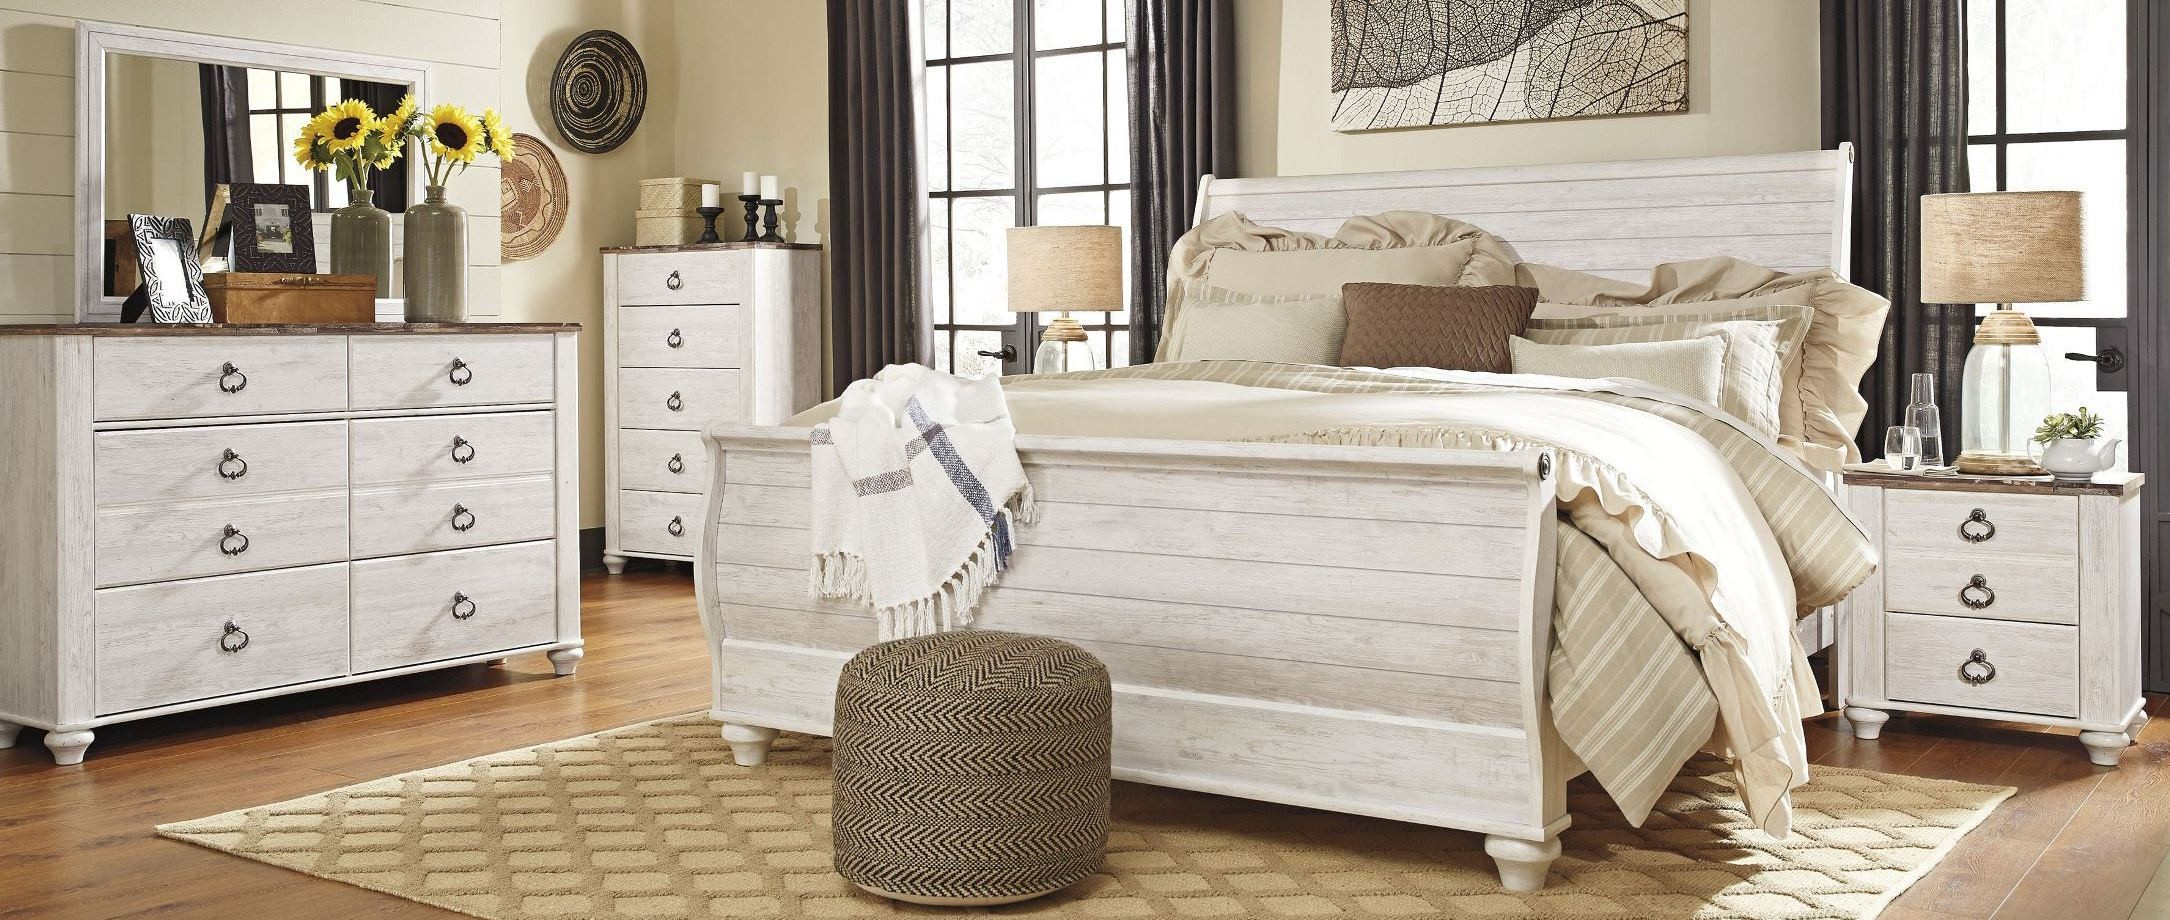 willowton whitewash sleigh bedroom set b267 74 77 96 ashley willowton whitewash sleigh bedroom set bedroom sets